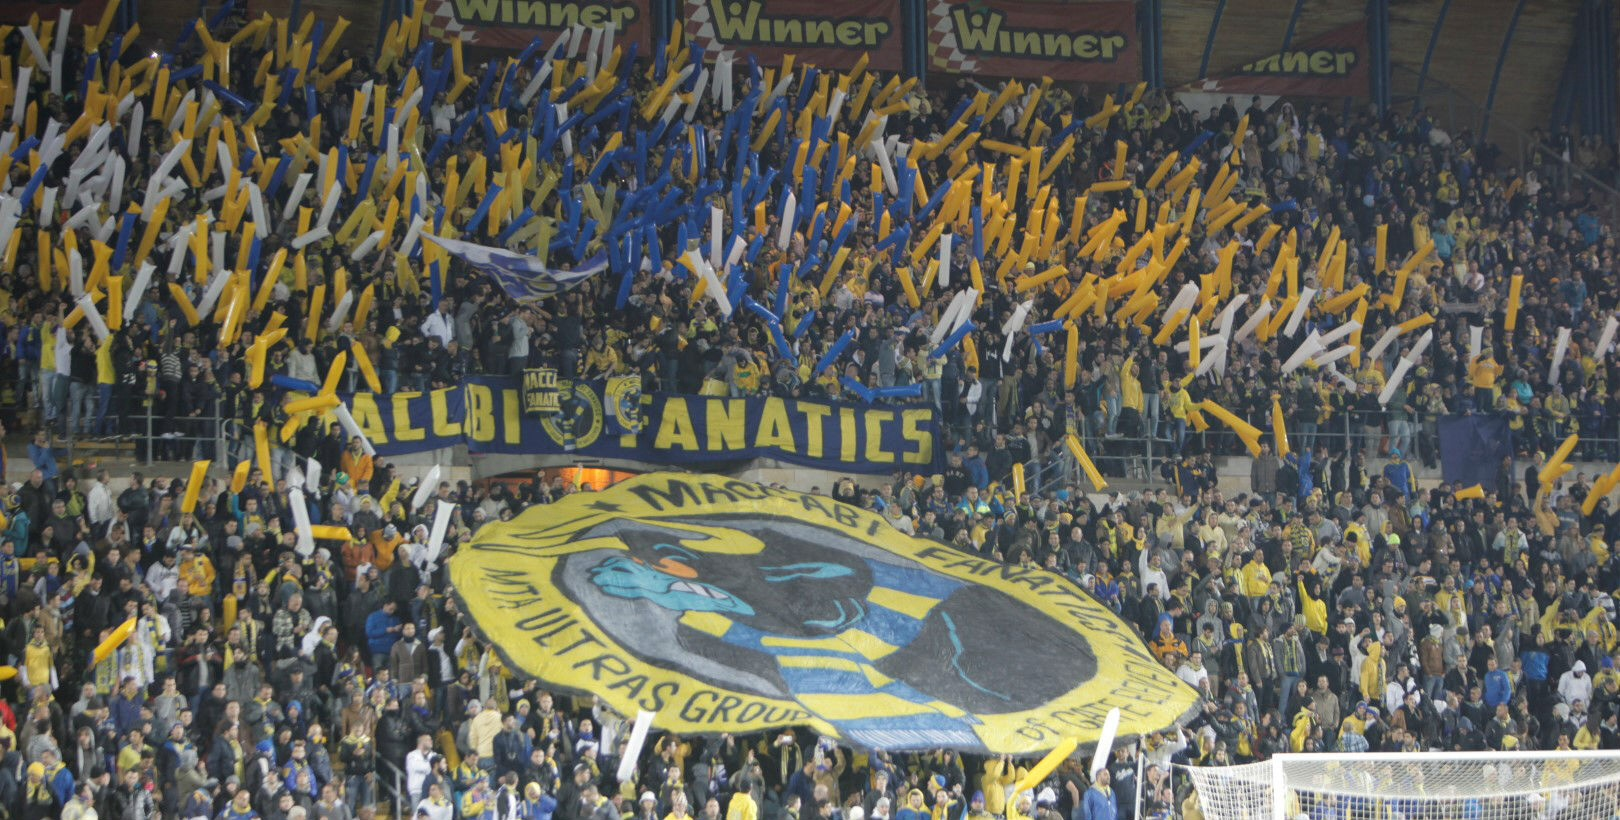 Maccabi Tel Aviv fans at Teddy Stadium-courtesy Maccabi Tel Aviv website